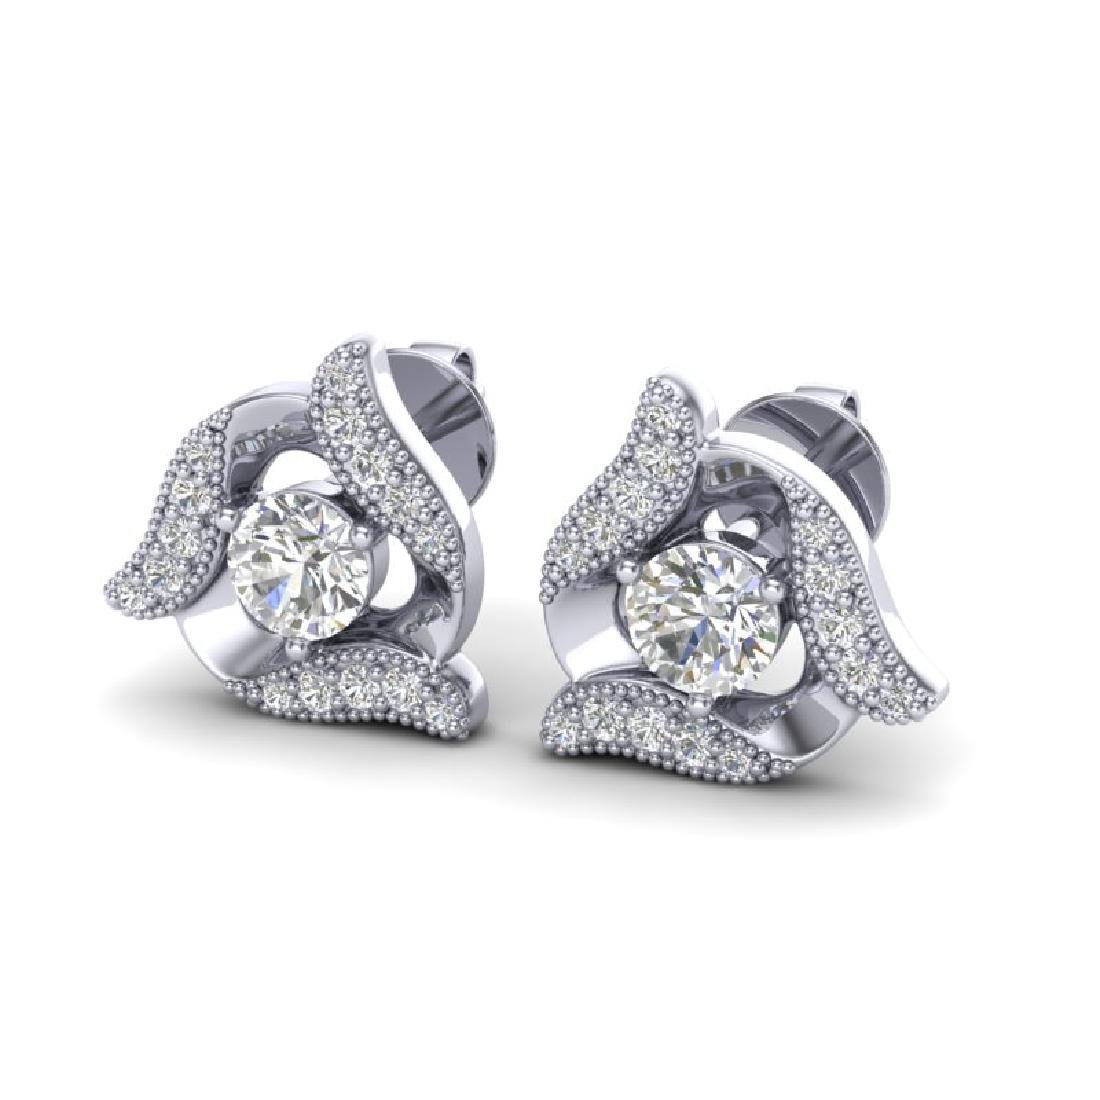 0.76 CTW Micro Pave VS/SI Diamond Halo Earrings 18K